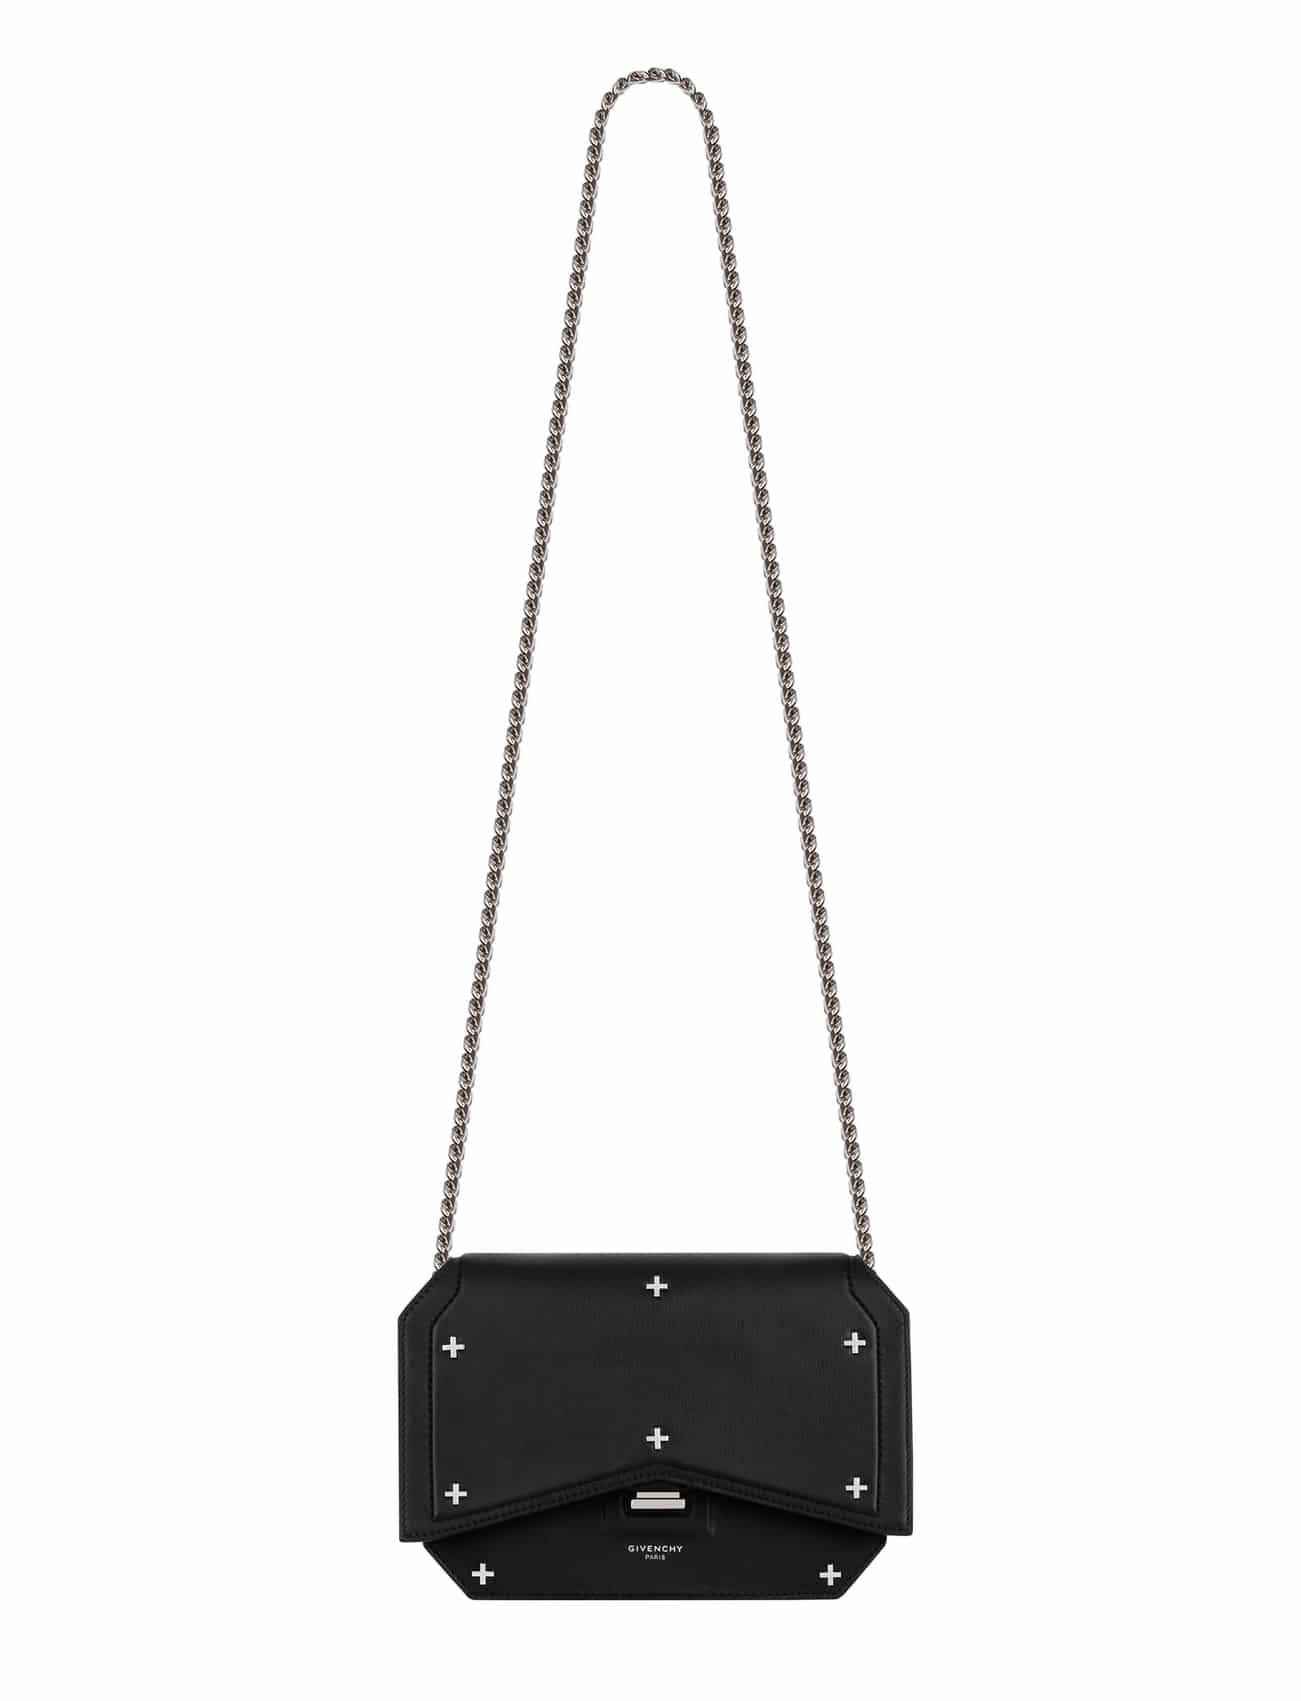 28a113b631 Givenchy Black Embellished with Metal Crosses Bow-Cut Cross-Body with Chain  Bag